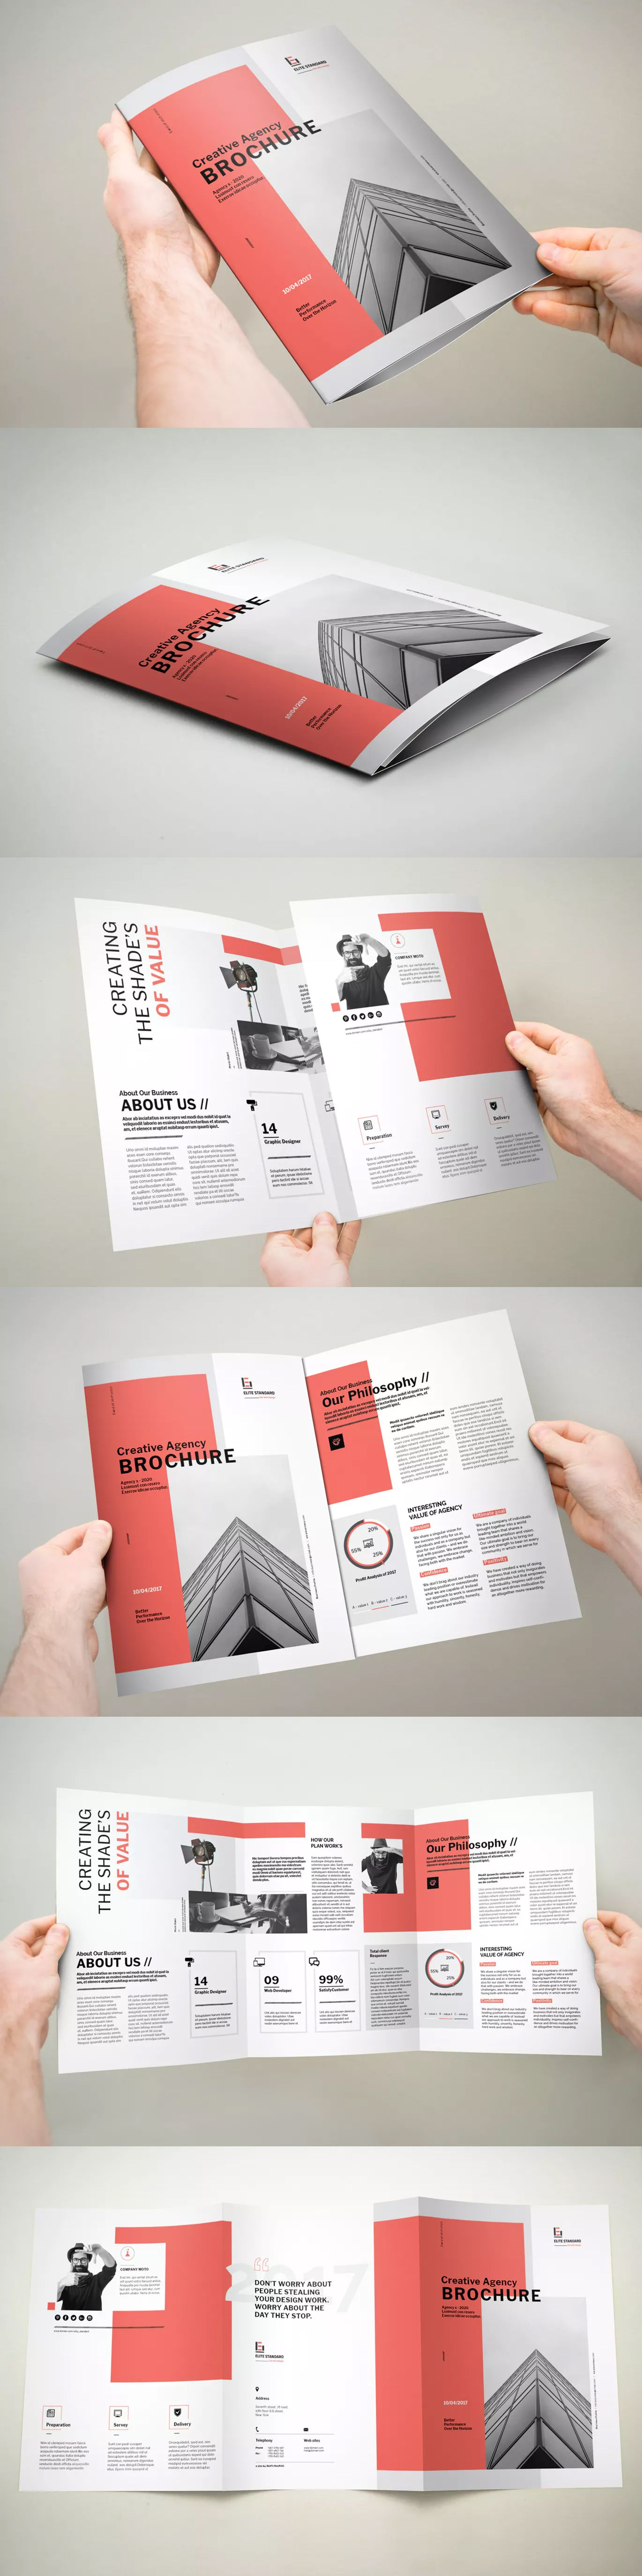 3xA4 Trifold Brochure Template InDesign INDD - A4 | Design ...